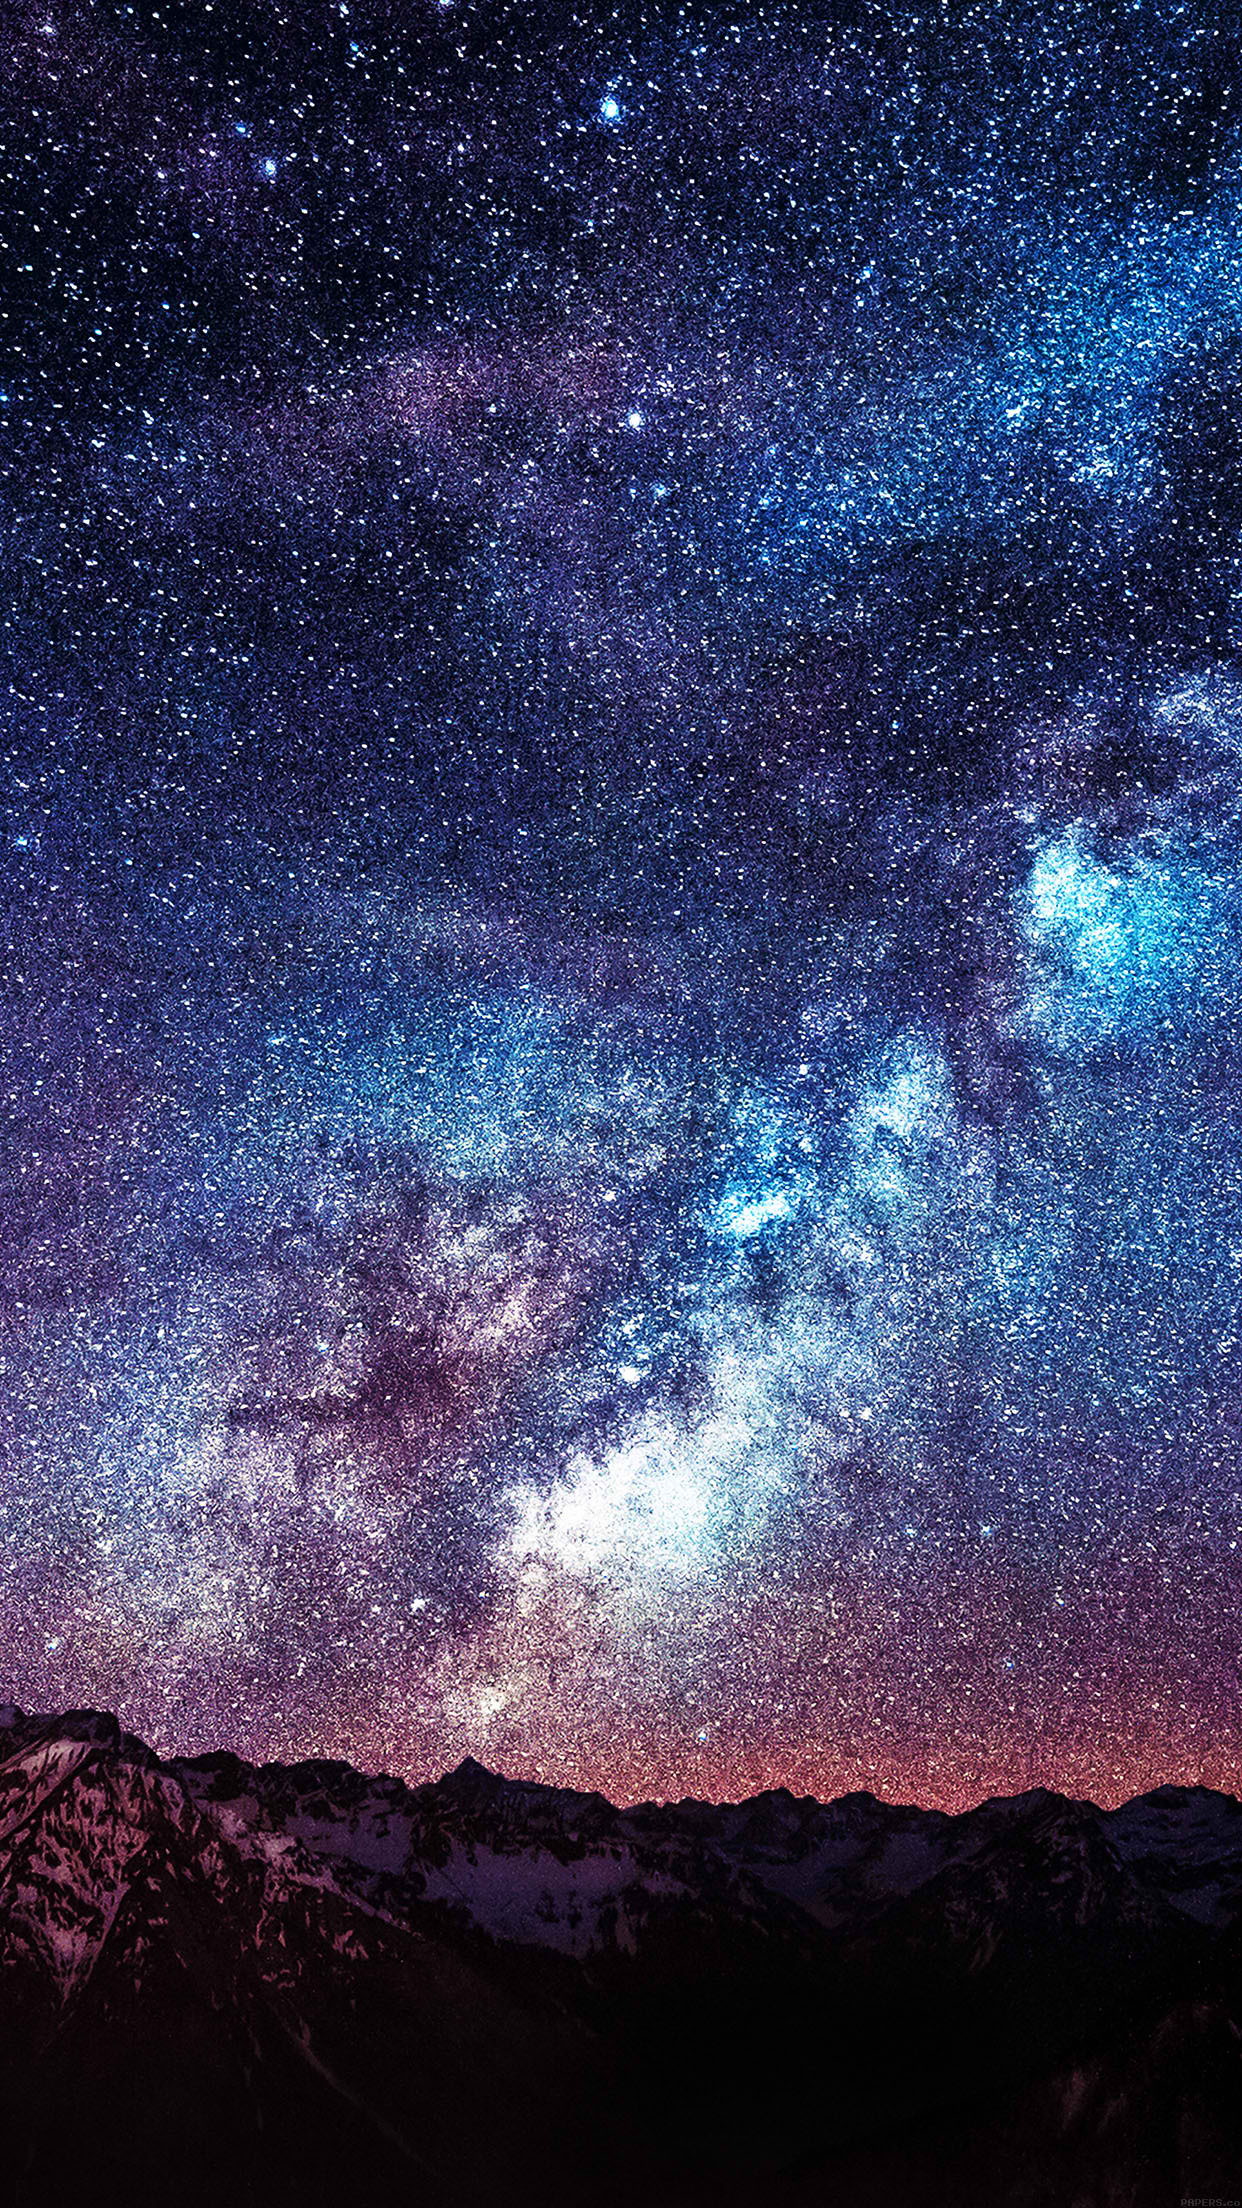 Wonderful Wallpaper Mountain Smartphone - Amazing-Milkyway-Space-Mountain-Red-Smartphone-Wallpaper  Pic_452690.jpg